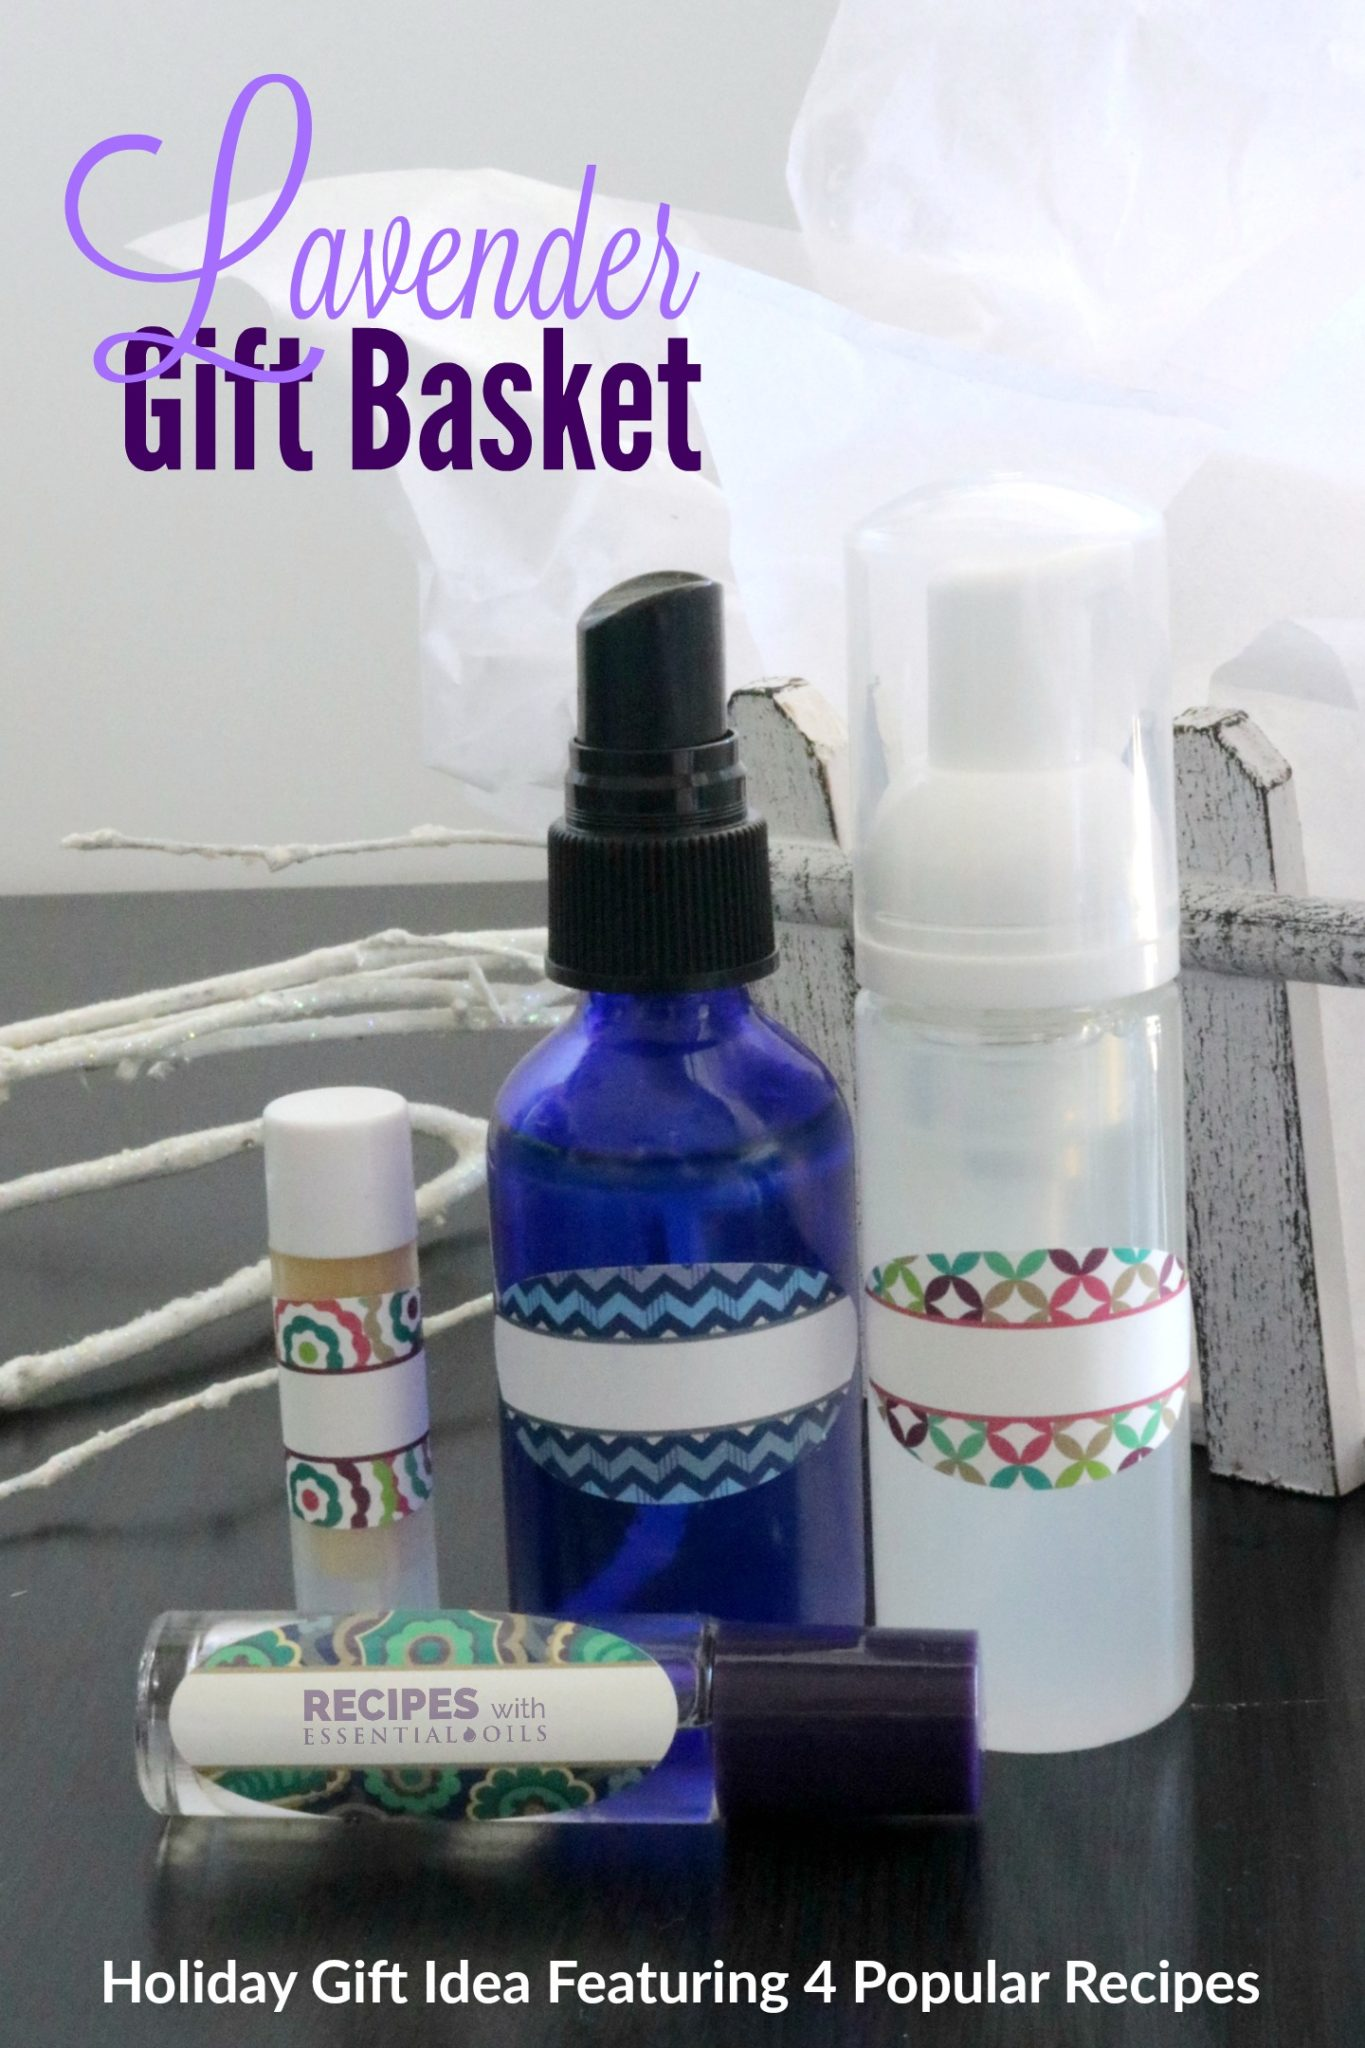 Lavender Gift Basket filled with 4 of our most popular recipes from RecipeswithEssentialOils.com